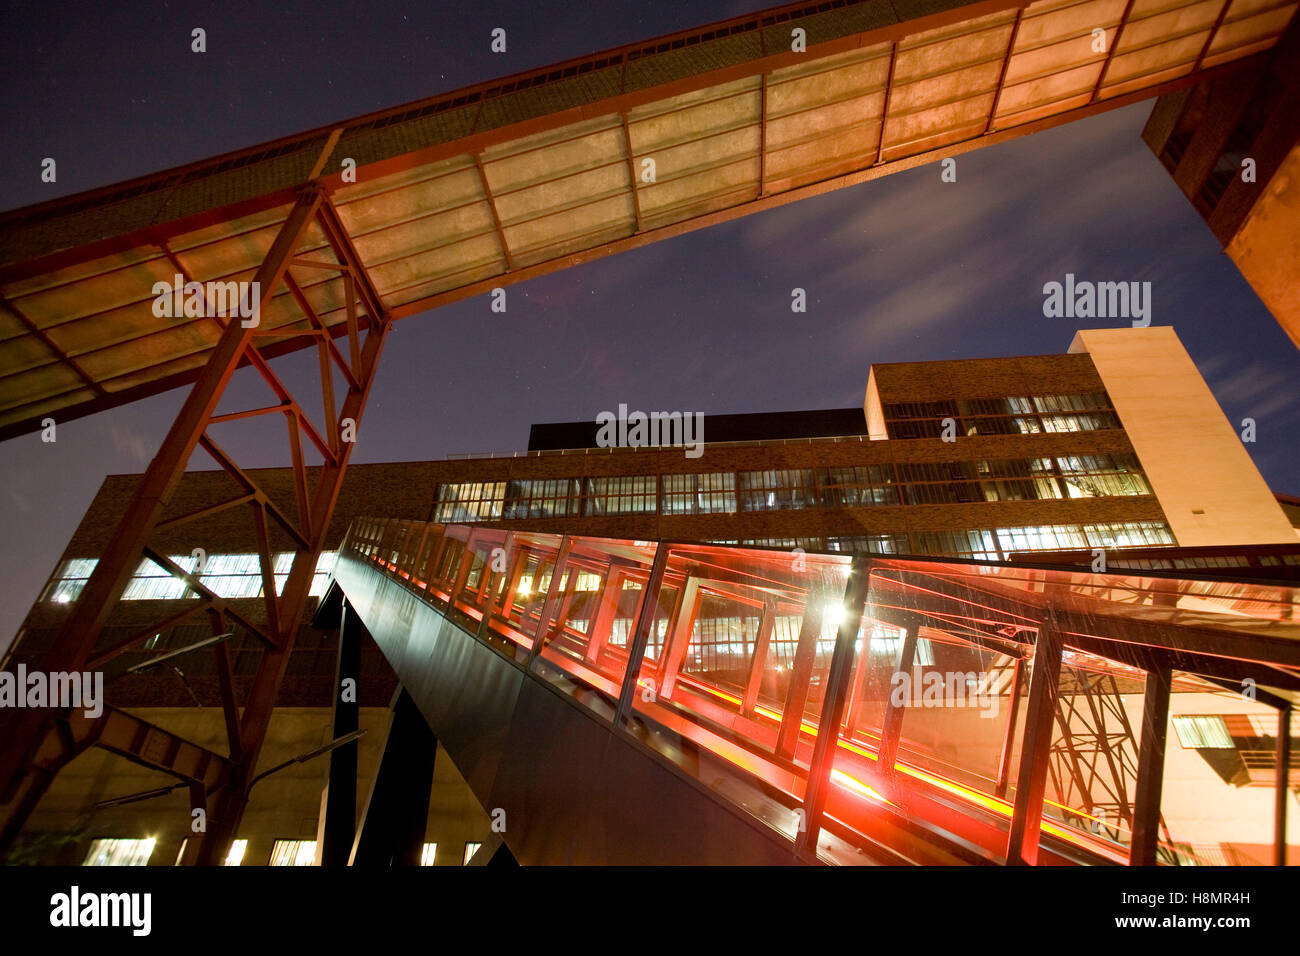 Germany,  Ruhr Area, Essen, industry monument Zeche Zollverein, shaft XII, on the right the escalator to the visitor - Stock Image